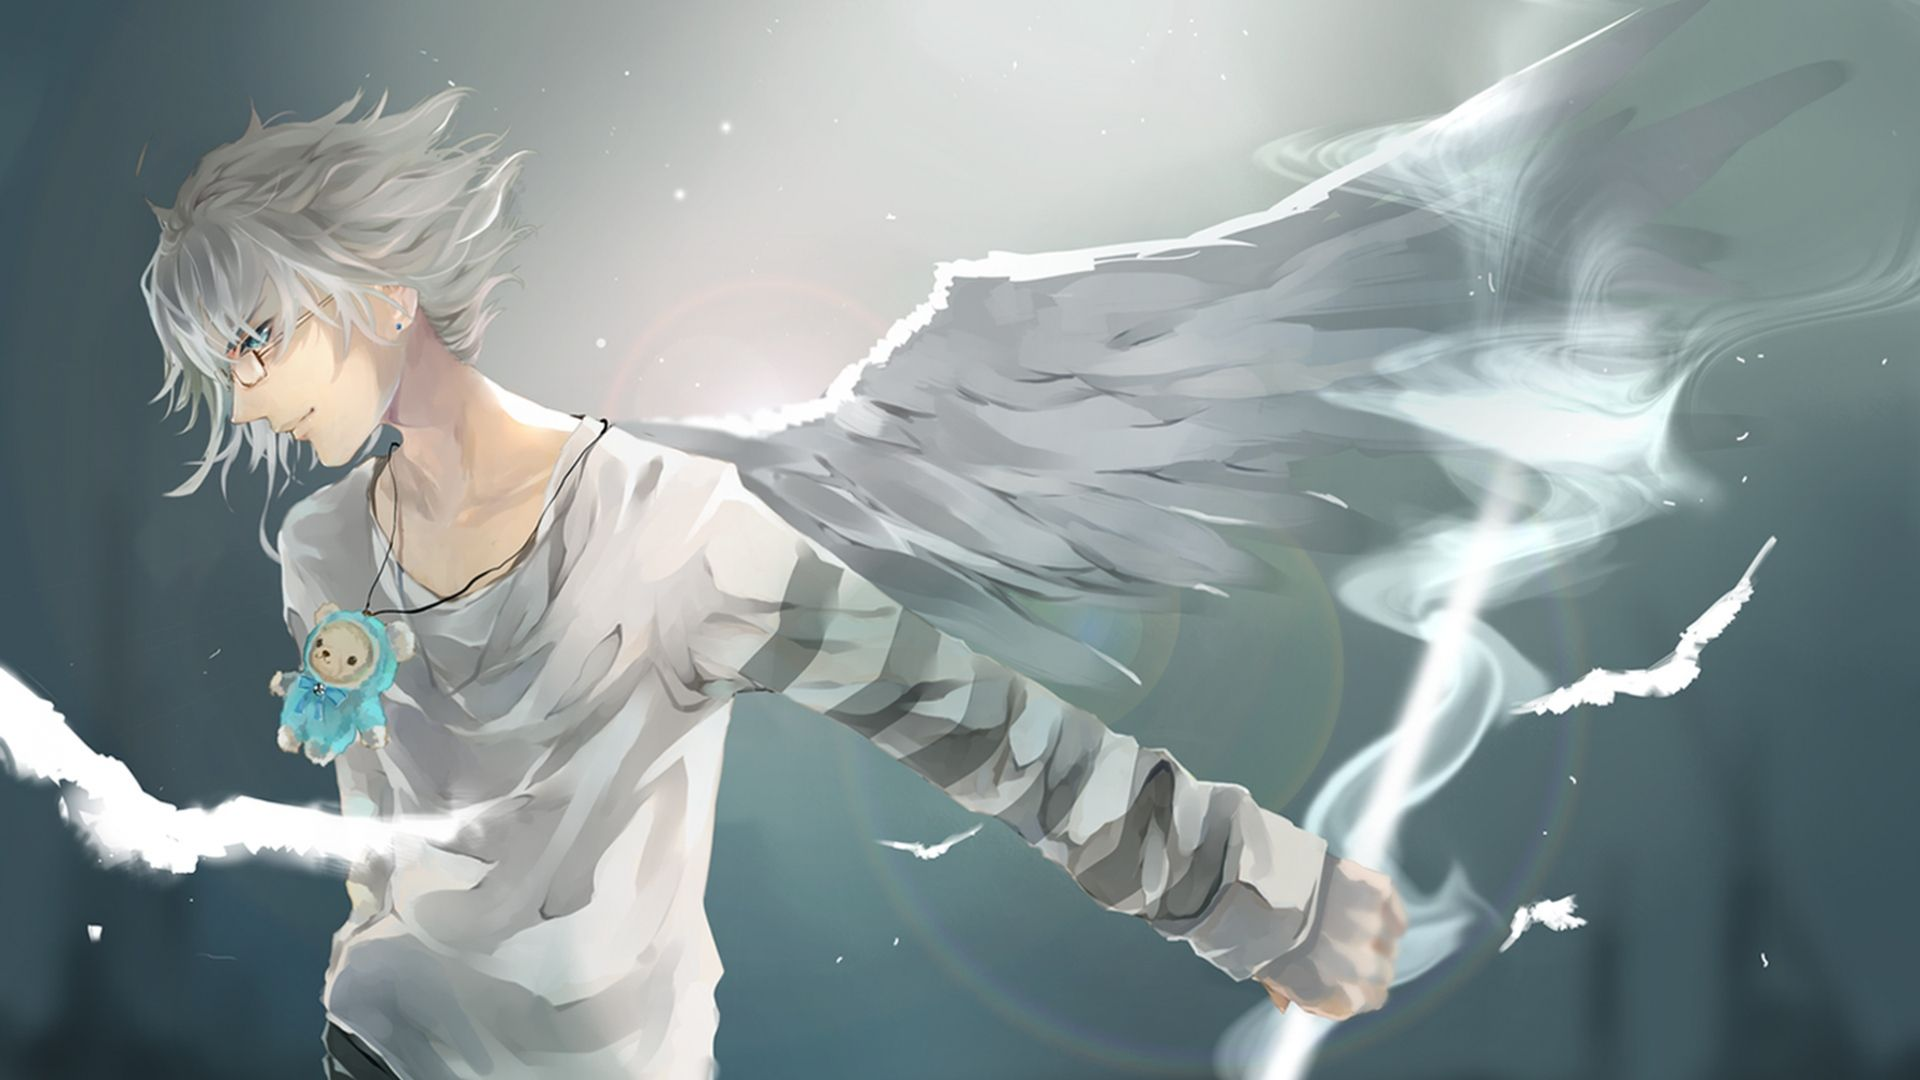 Hd Wallpaper 1920x1080 Anime Posted By Christopher Johnson